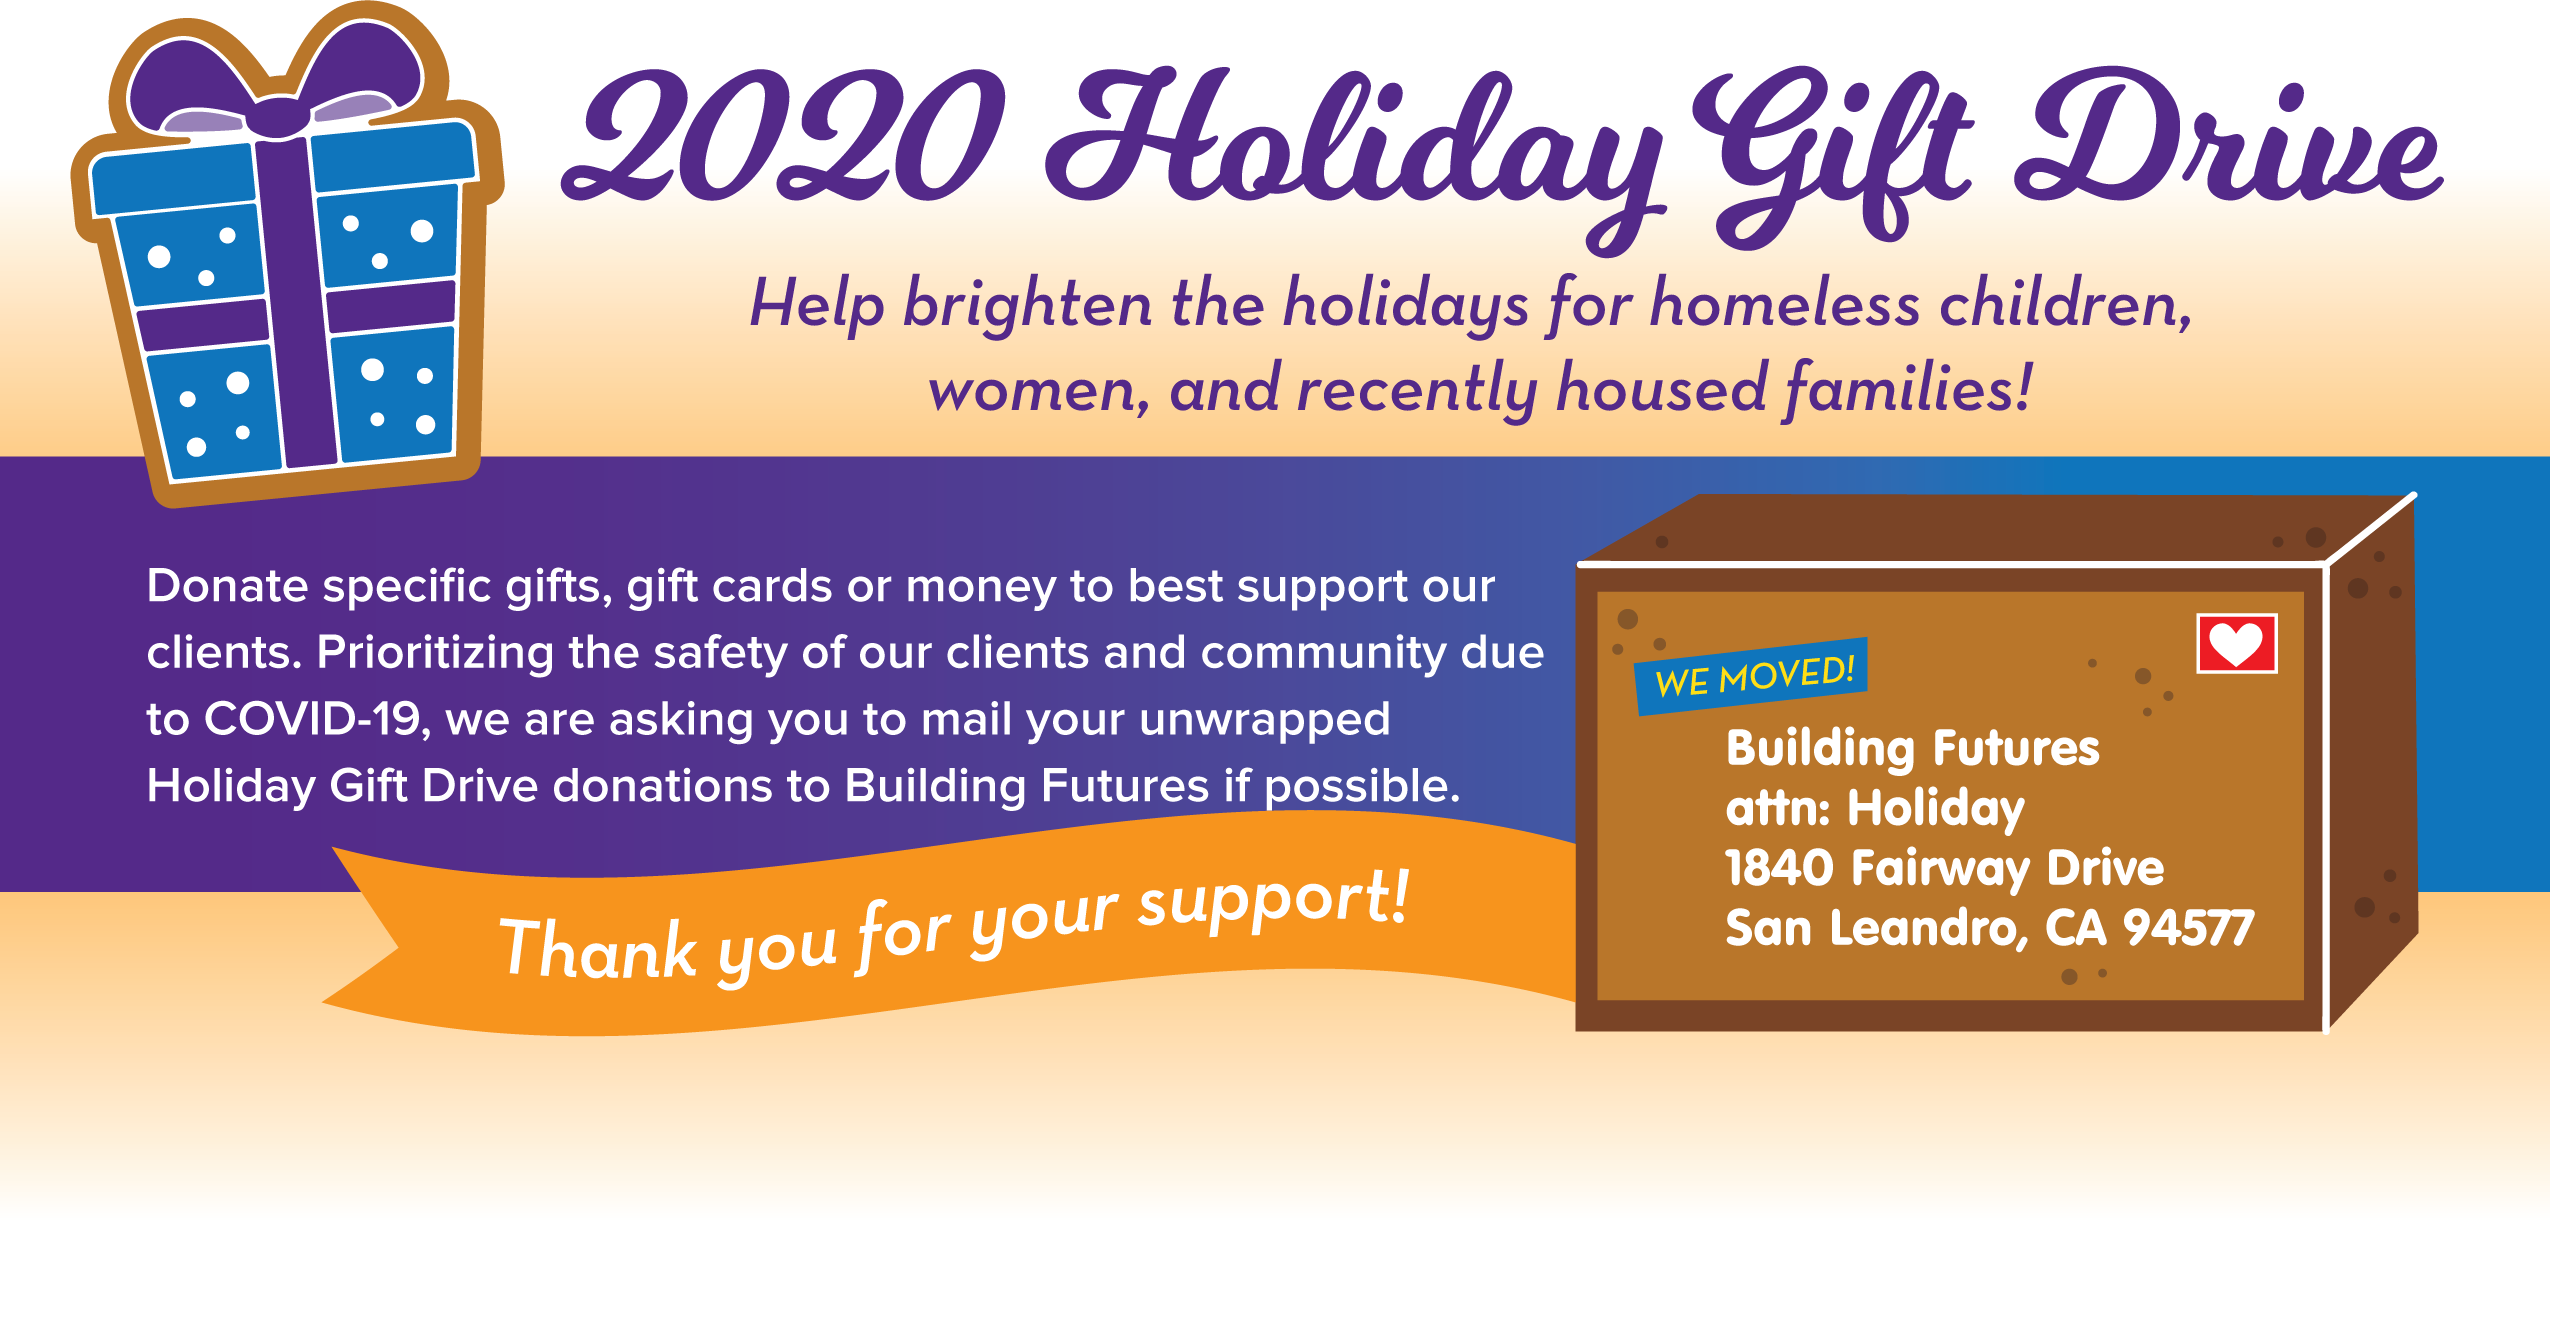 2020 Holiday Gift Drive